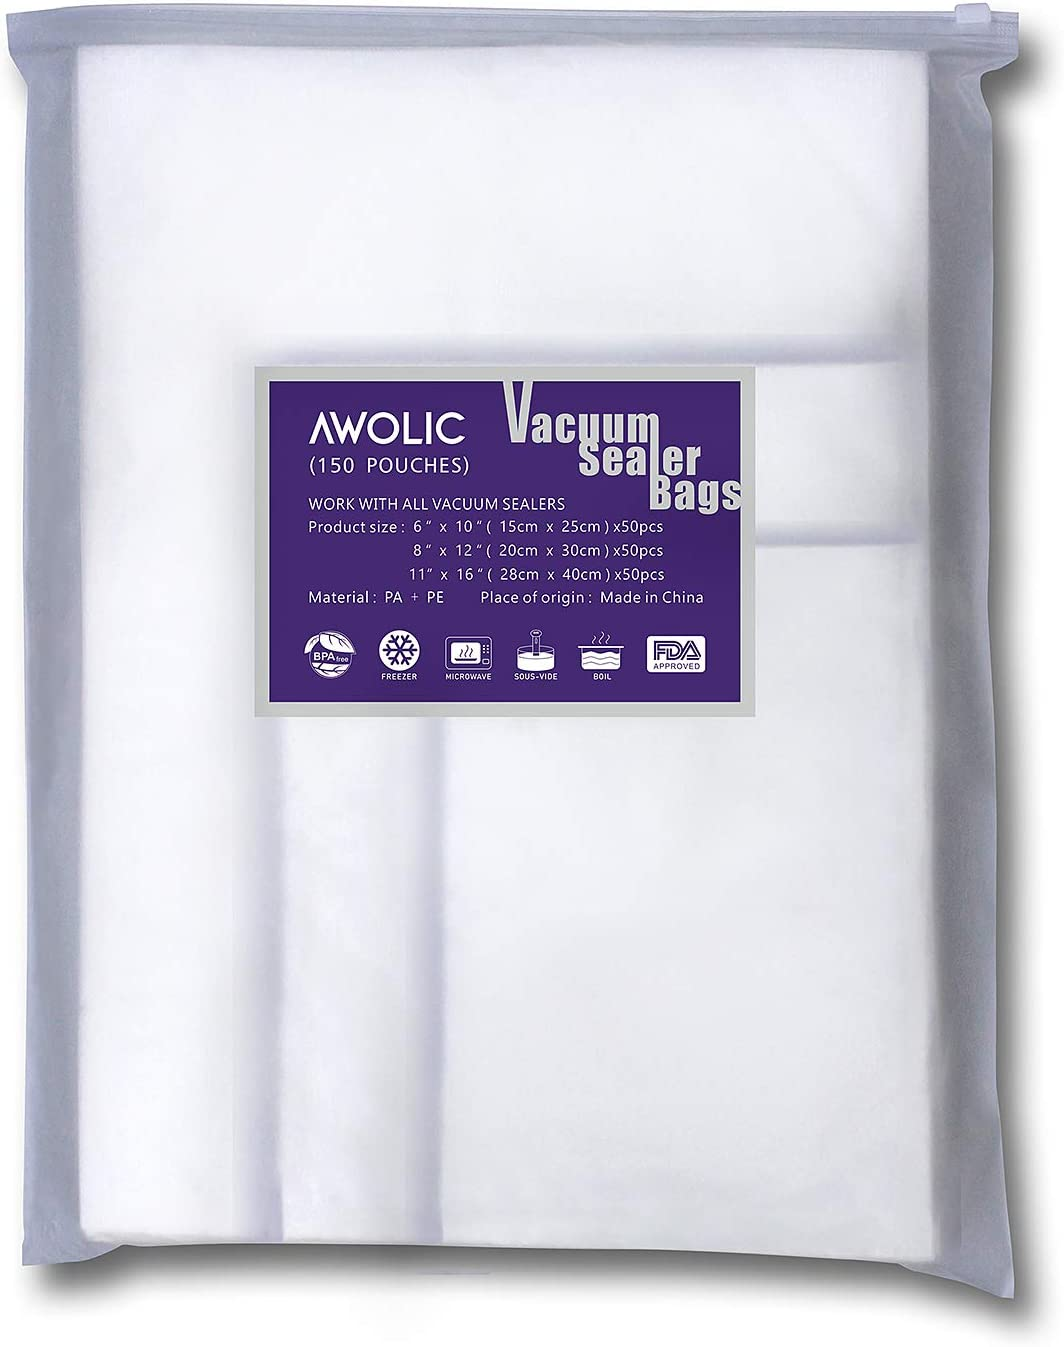 AWOLIC 150 Vacuum Sealer Storage Bags for food saver,(3 Sizes,50 Each of Pint 6x10,Quart 8x12,Gallon 11x16),BPA Free,Commercial Grade, Heavy Duty, Work on any clamp external vacuum system.